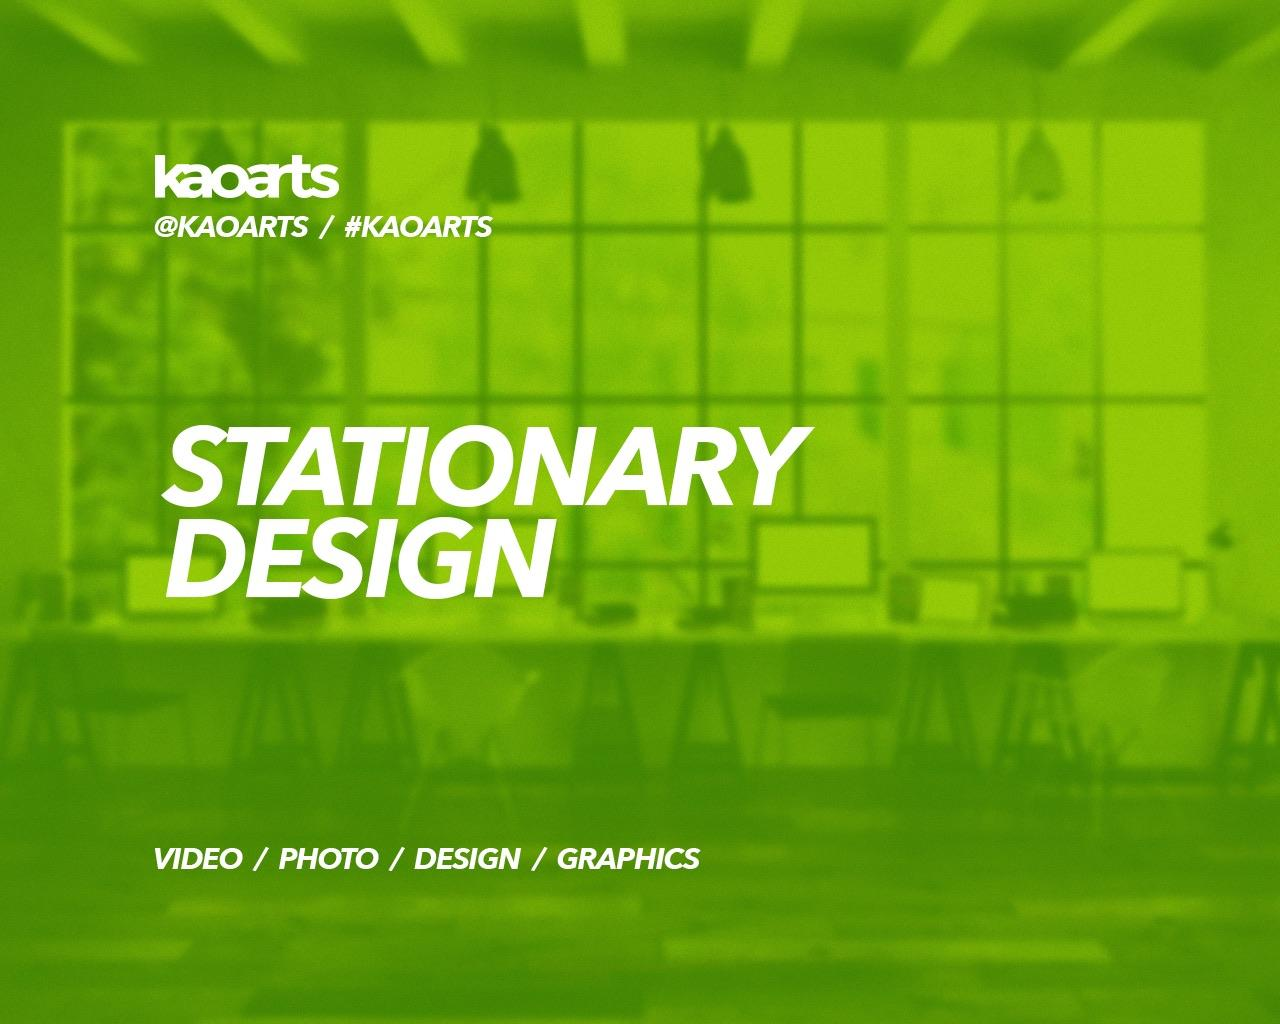 Professional Stationary Design by Kaoarts - 95847